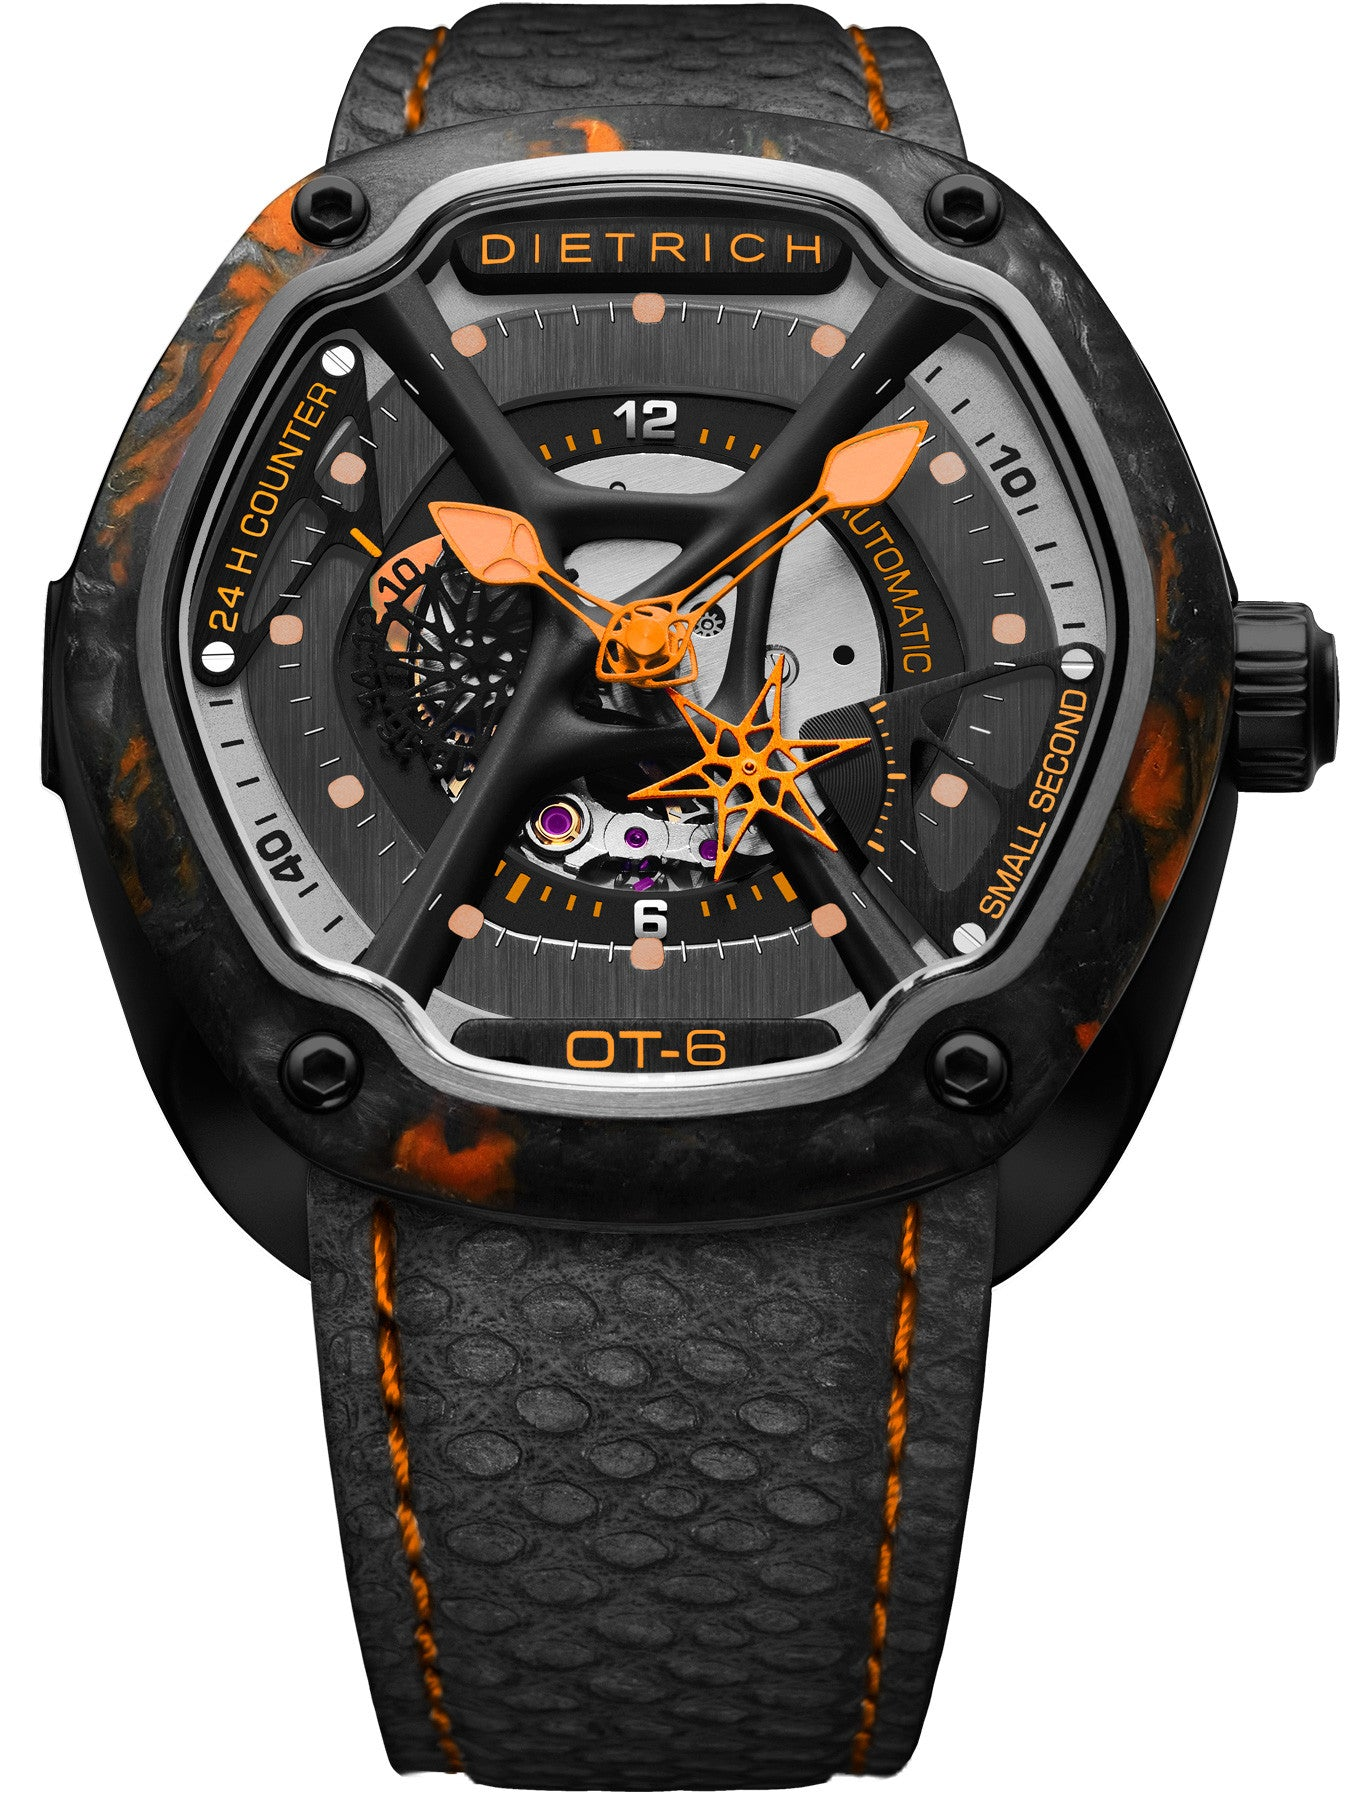 Dietrich Watch OT-6 Carbon Colour Mens